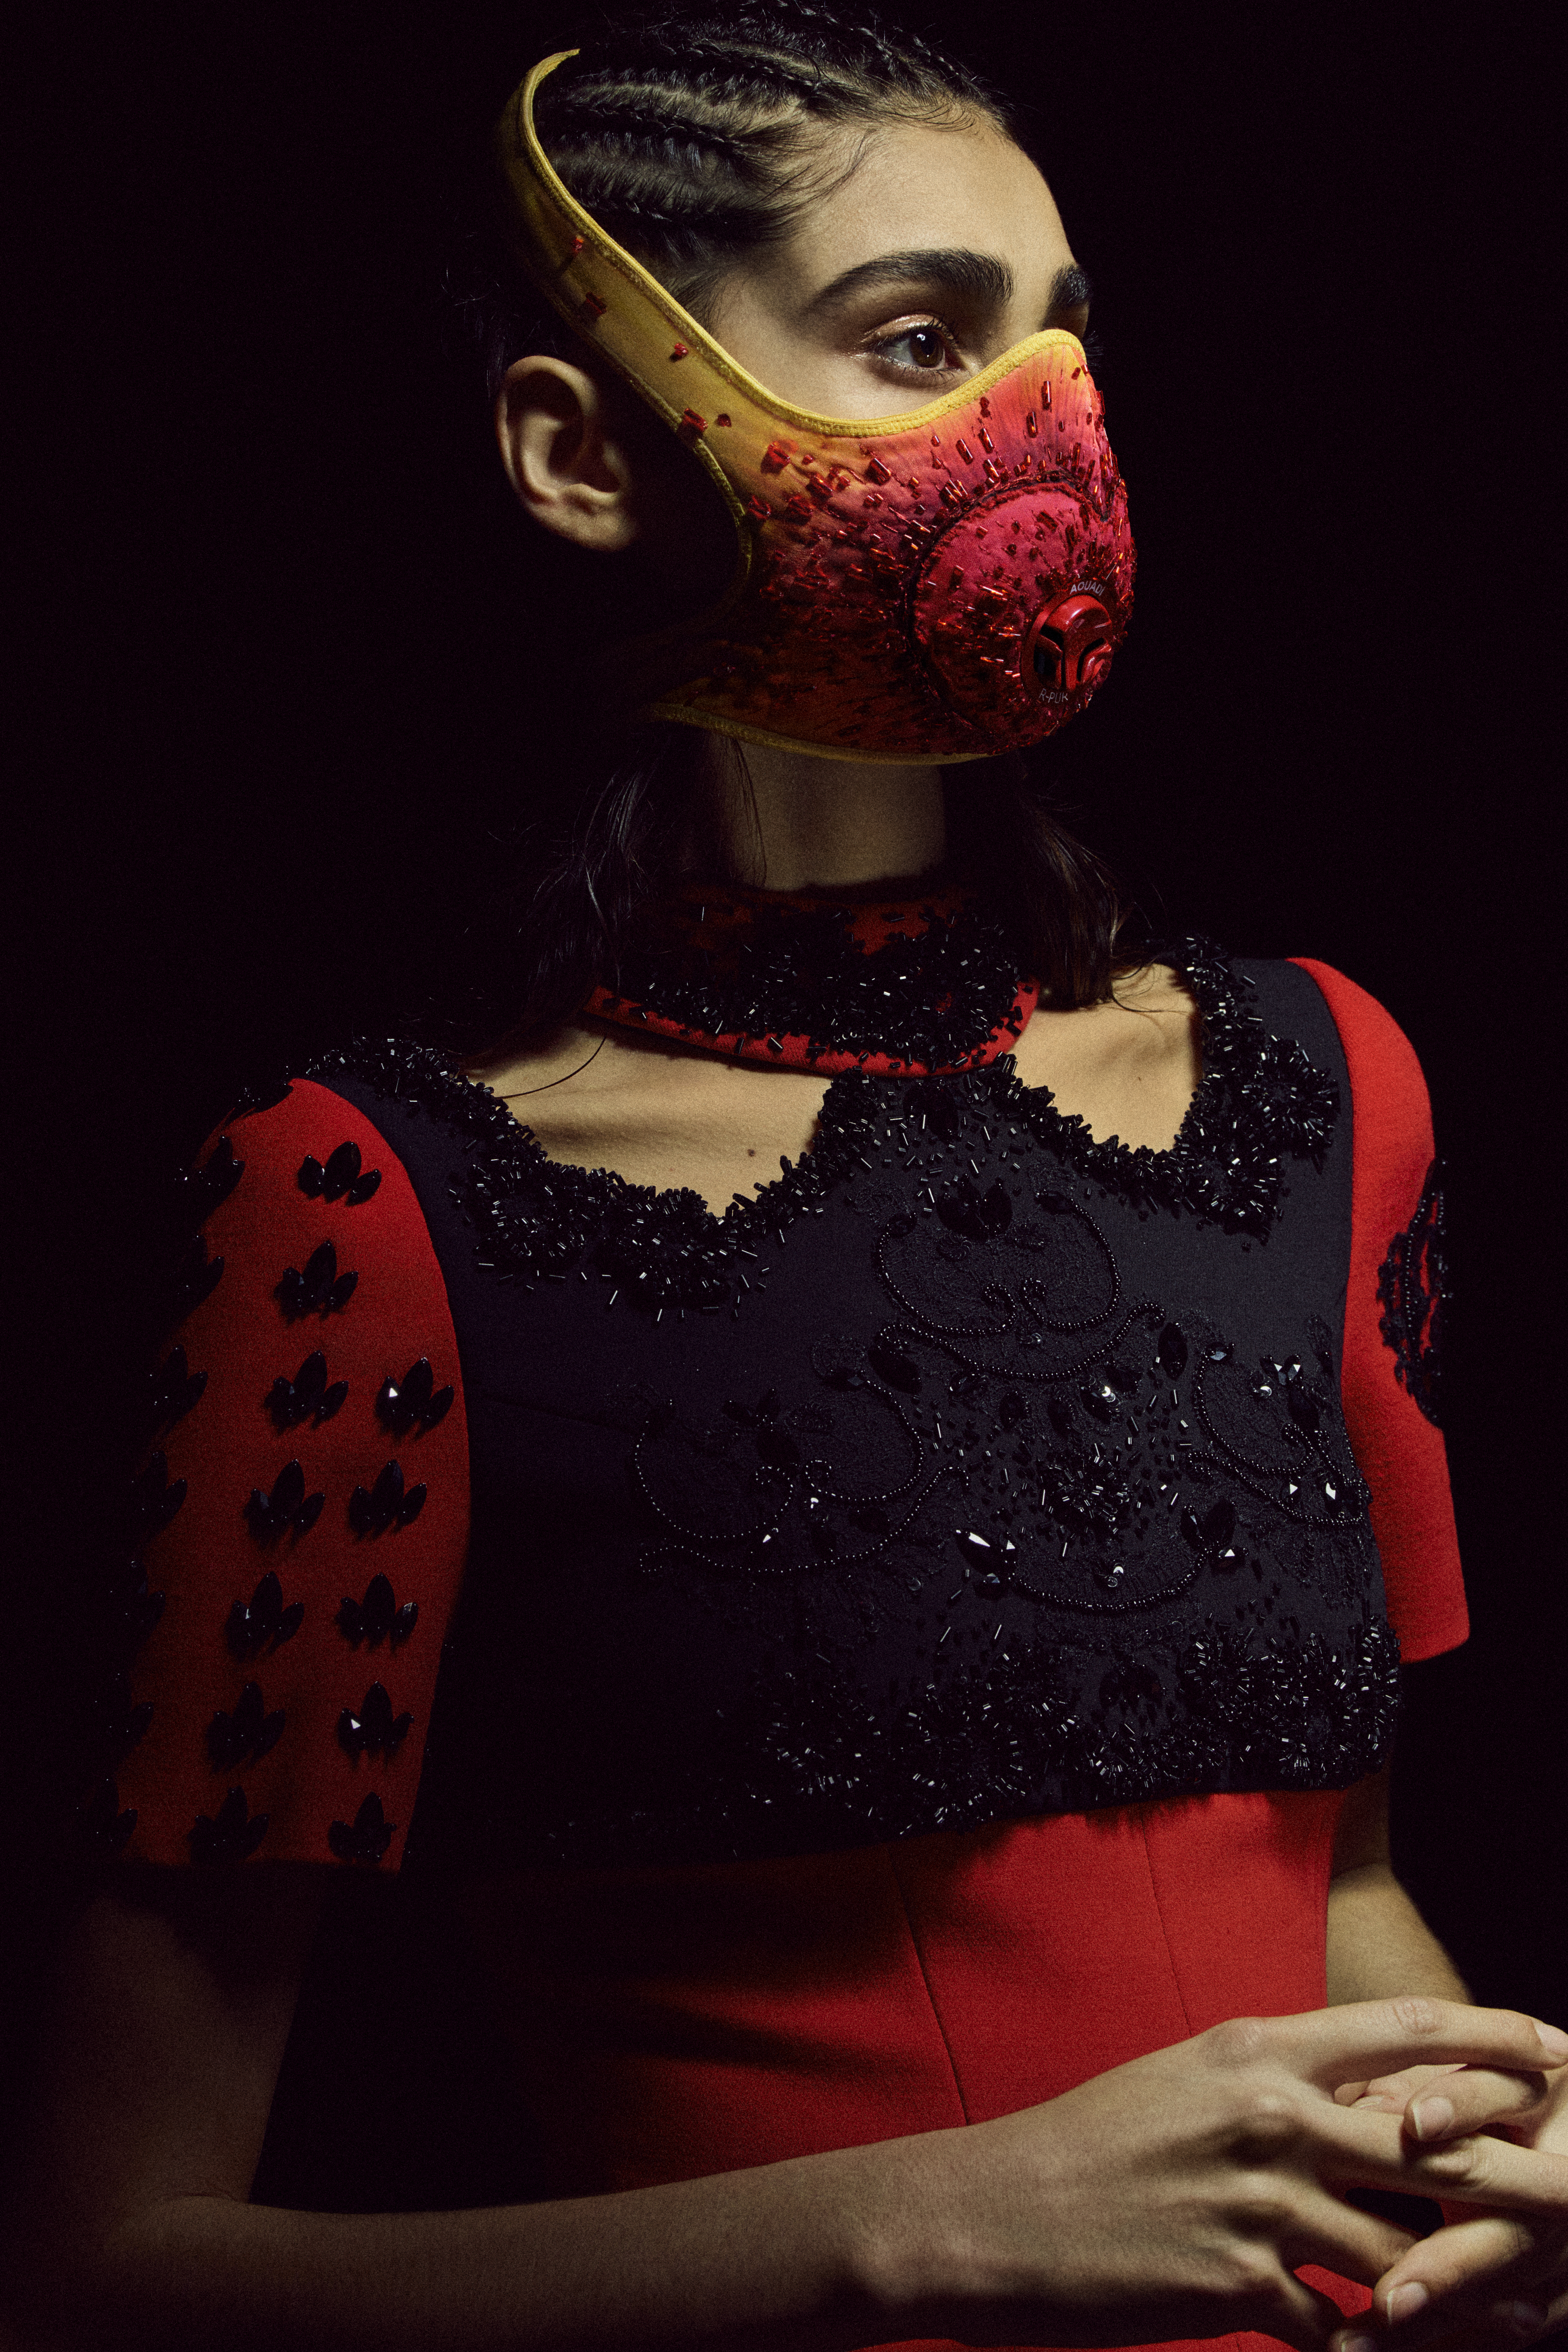 The Fiery Heart mask from the Yacine Aouadi x R-Pur collaboration.